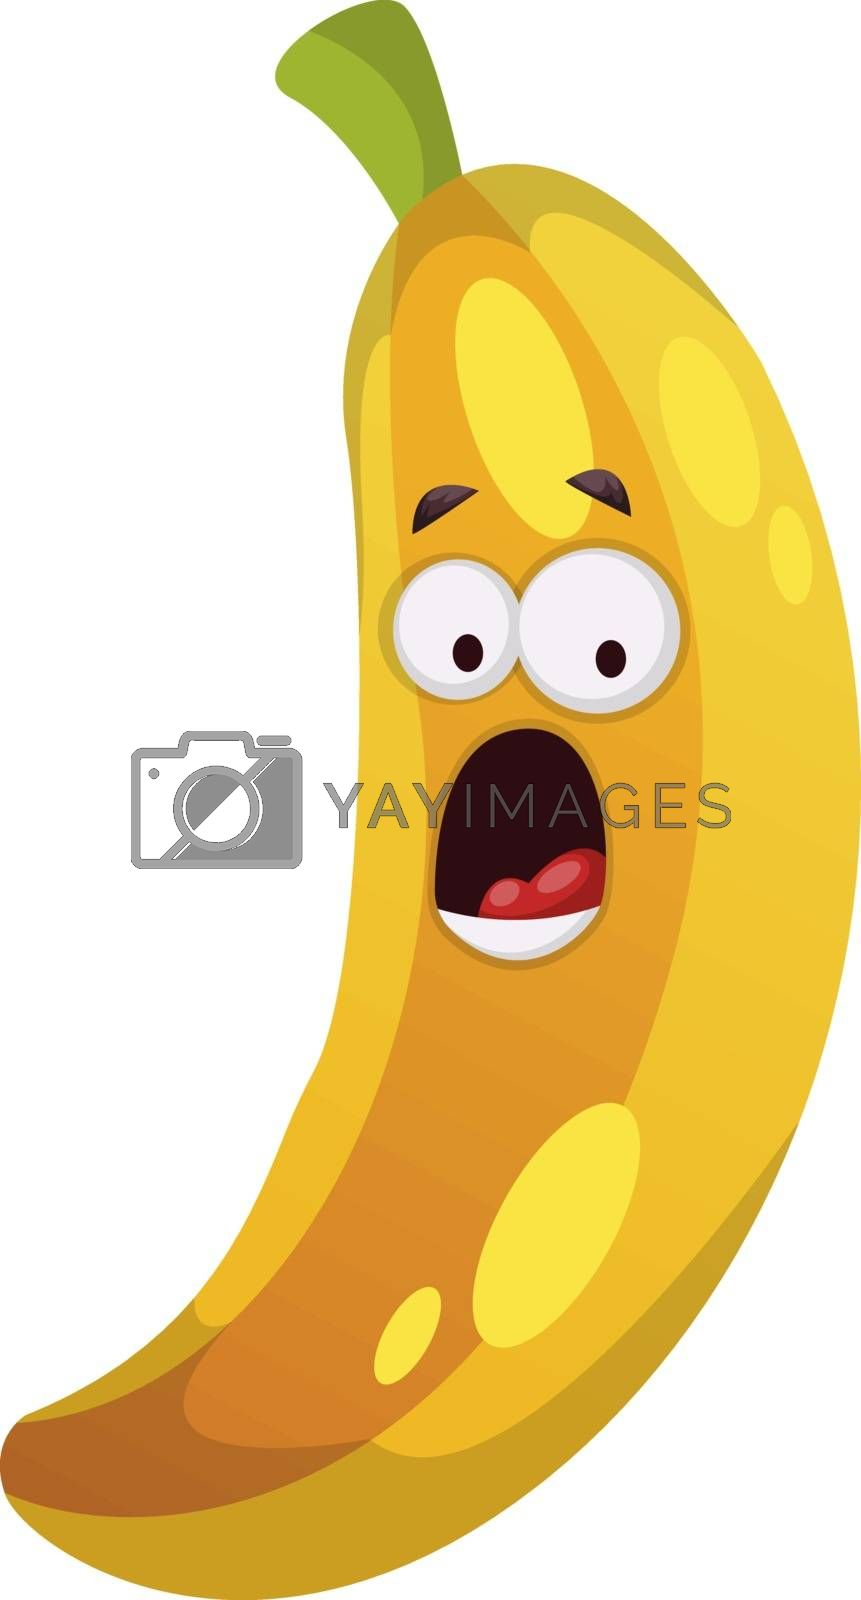 Royalty free image of Surprised banana illustration vector on white background by Morphart